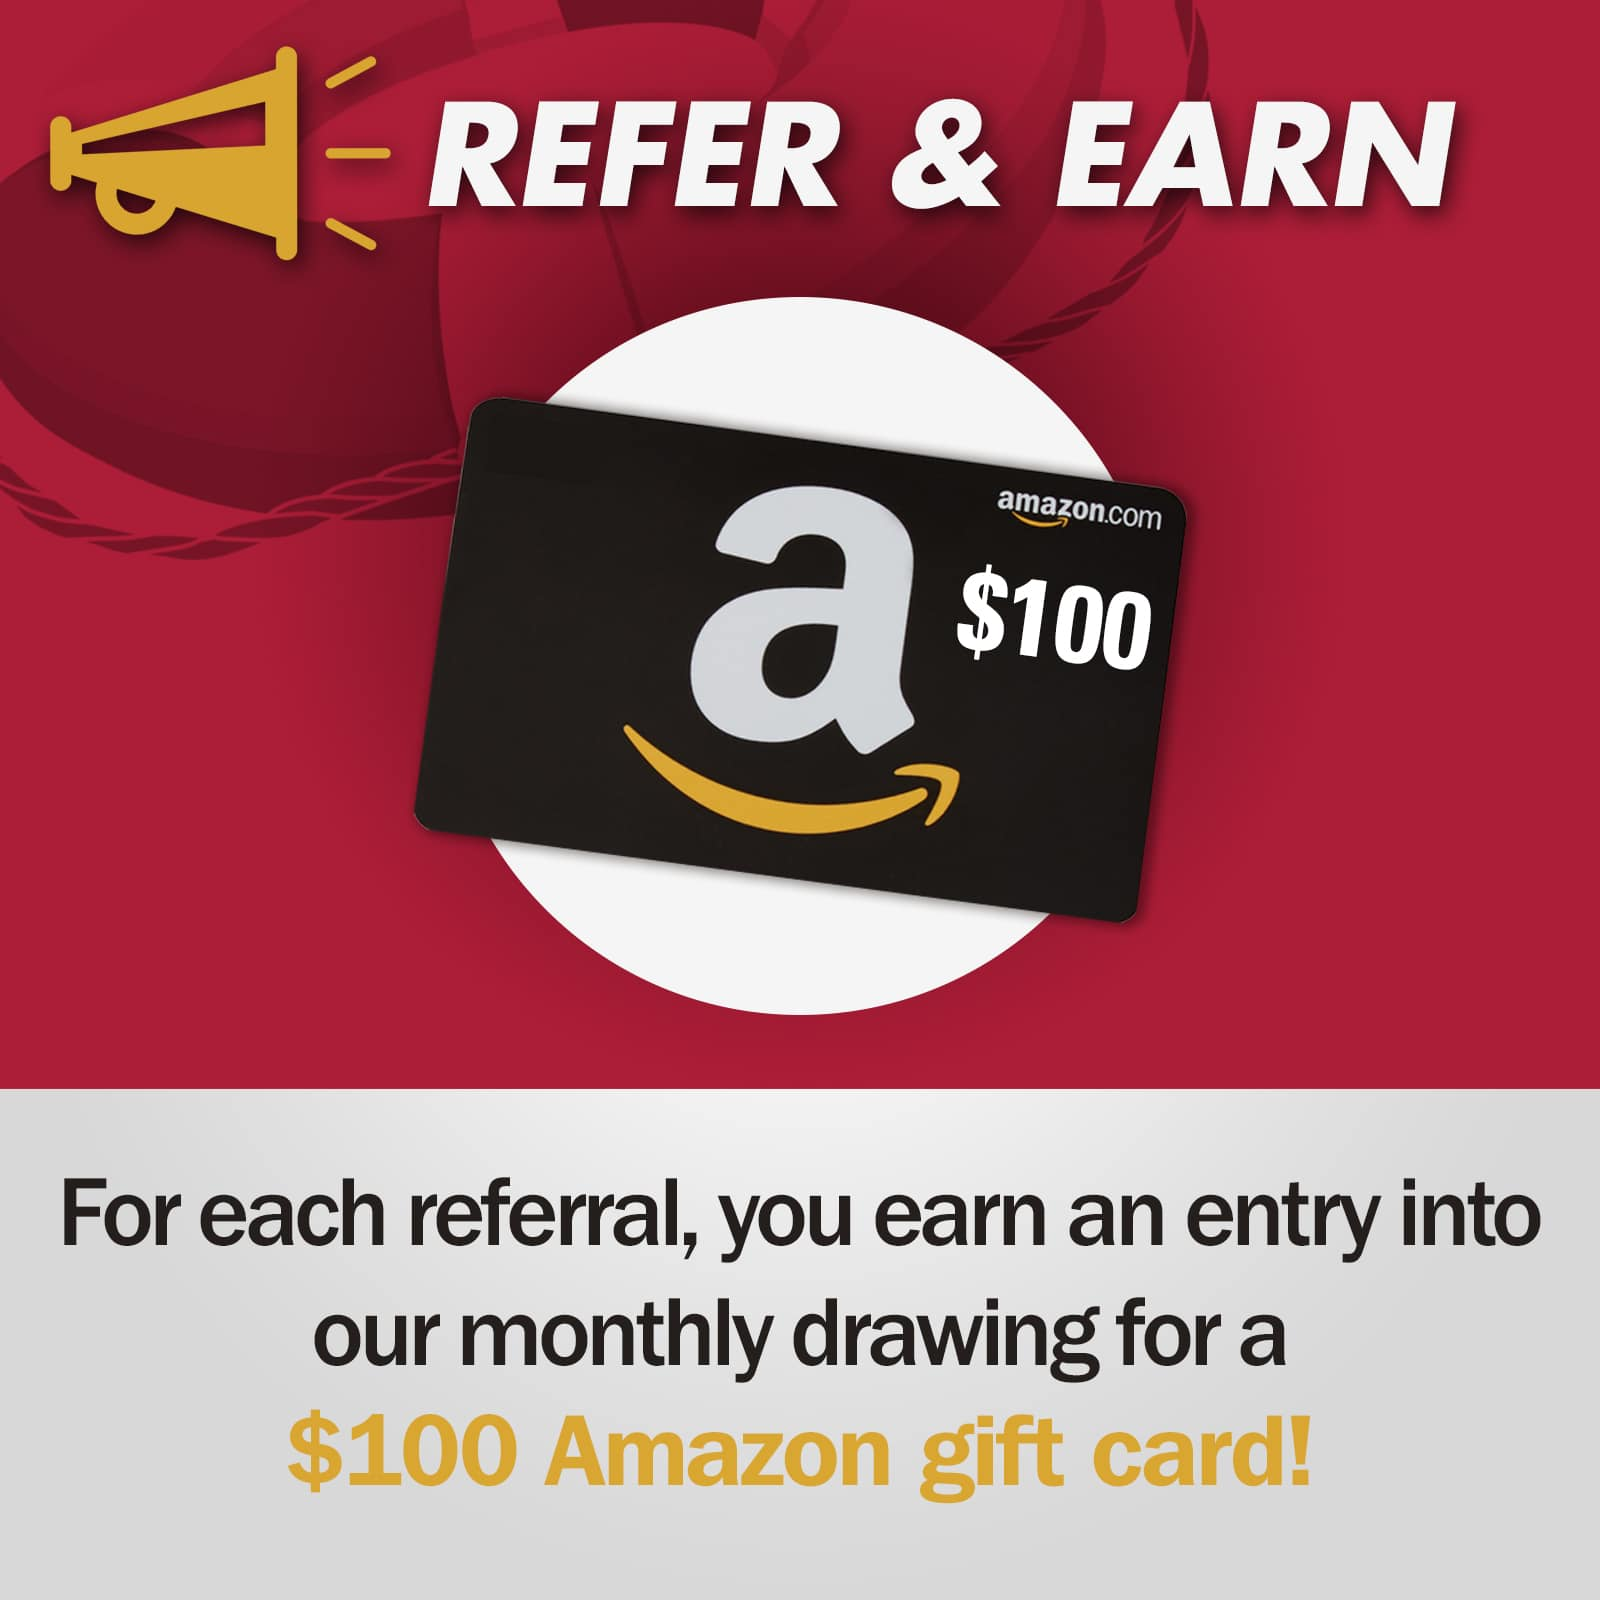 Refer & Earn - for each referral, you earn an entry into our monthly drawing for a $100 Amazon gift card!